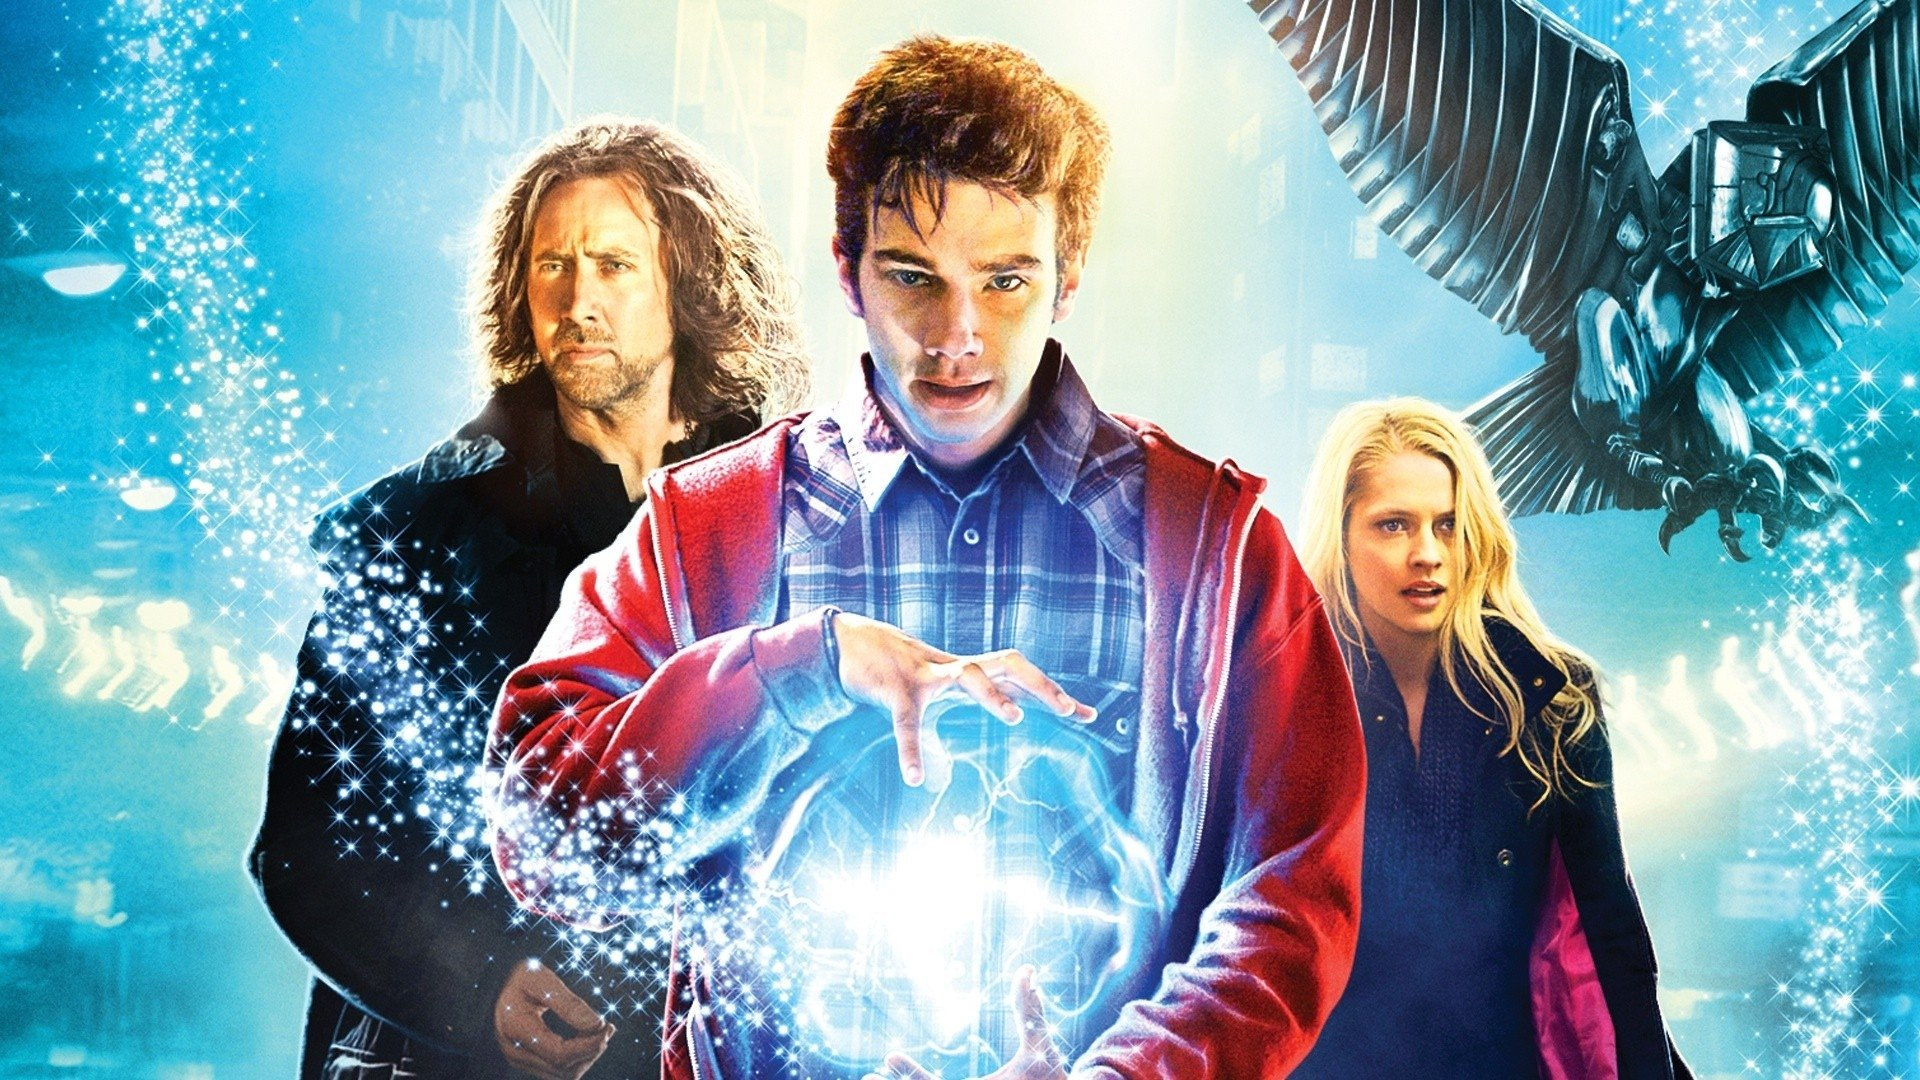 The Sorcerer's Apprentice (2010) movie sequels that should have been made